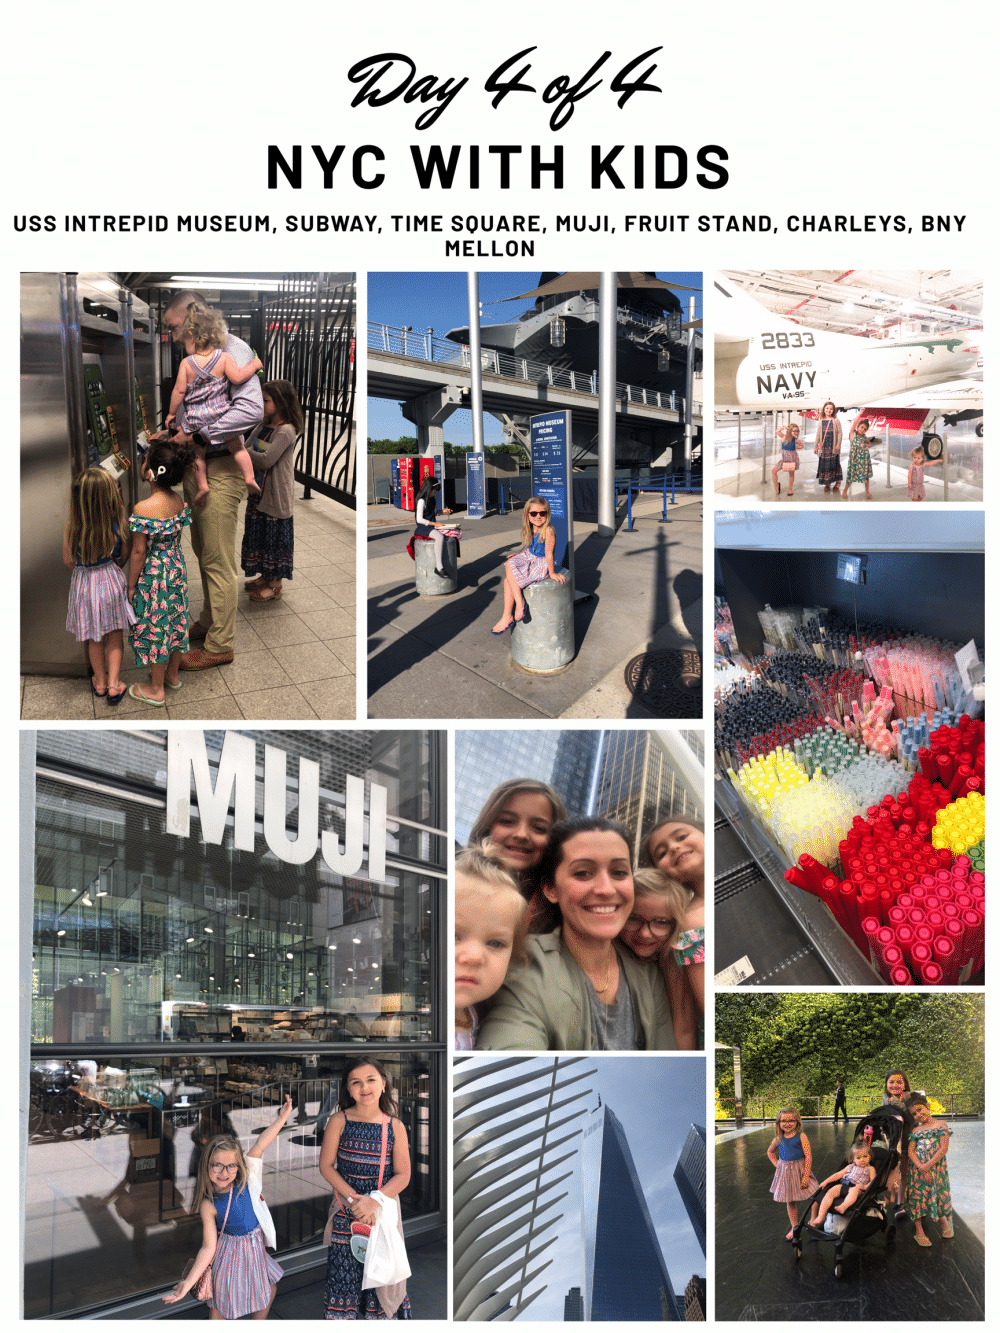 NYC with kids